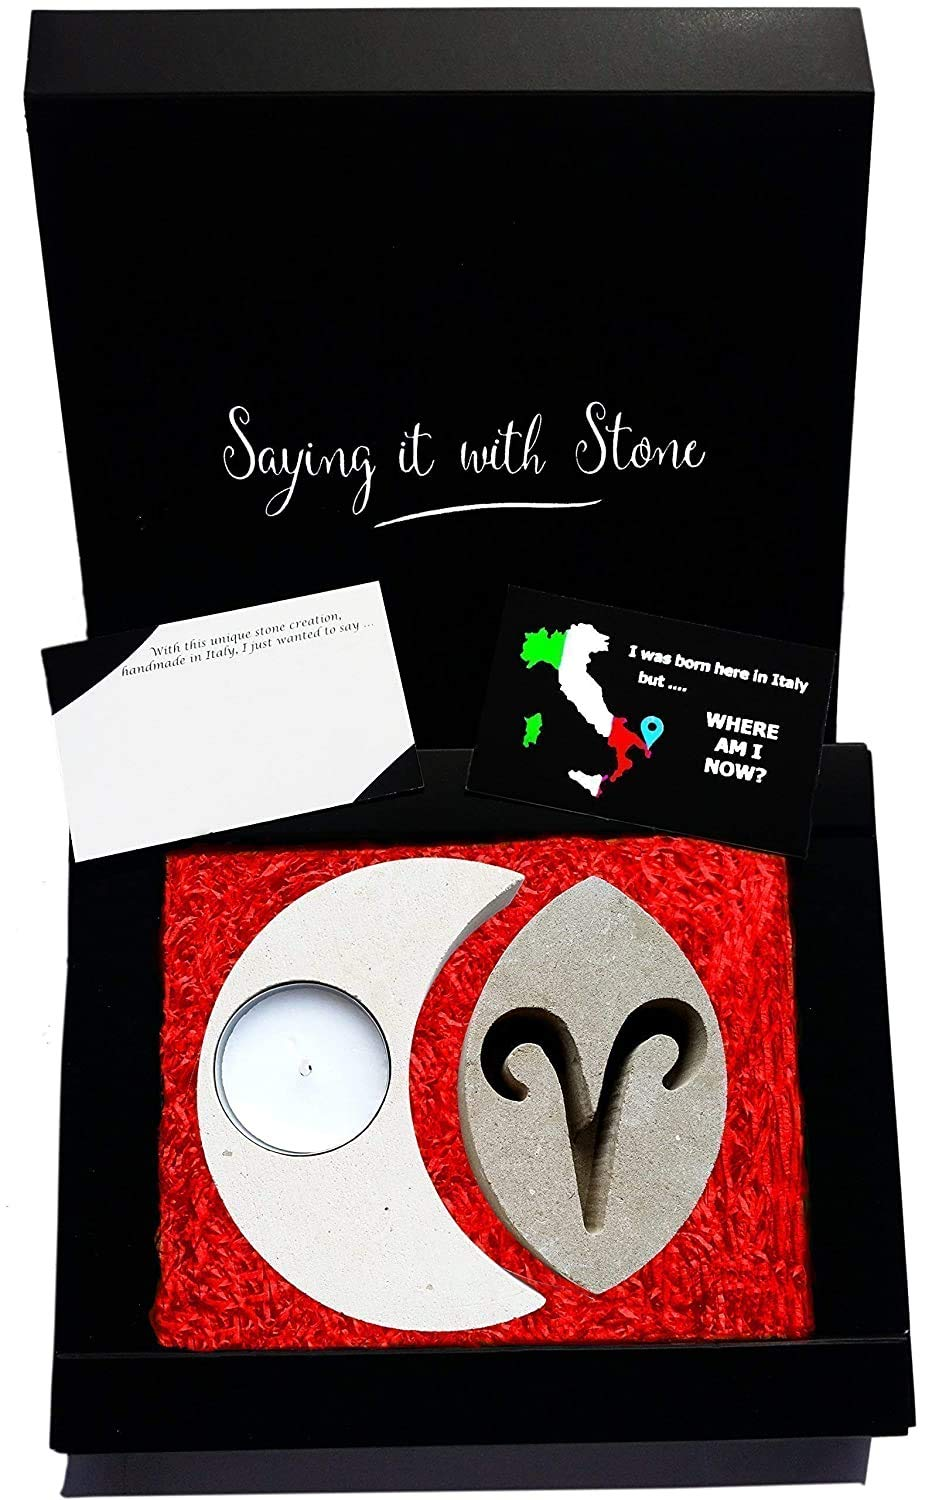 Aries Stone Translated Tealight Candle Holder Handmade Italy in Gift Box Popular overseas -